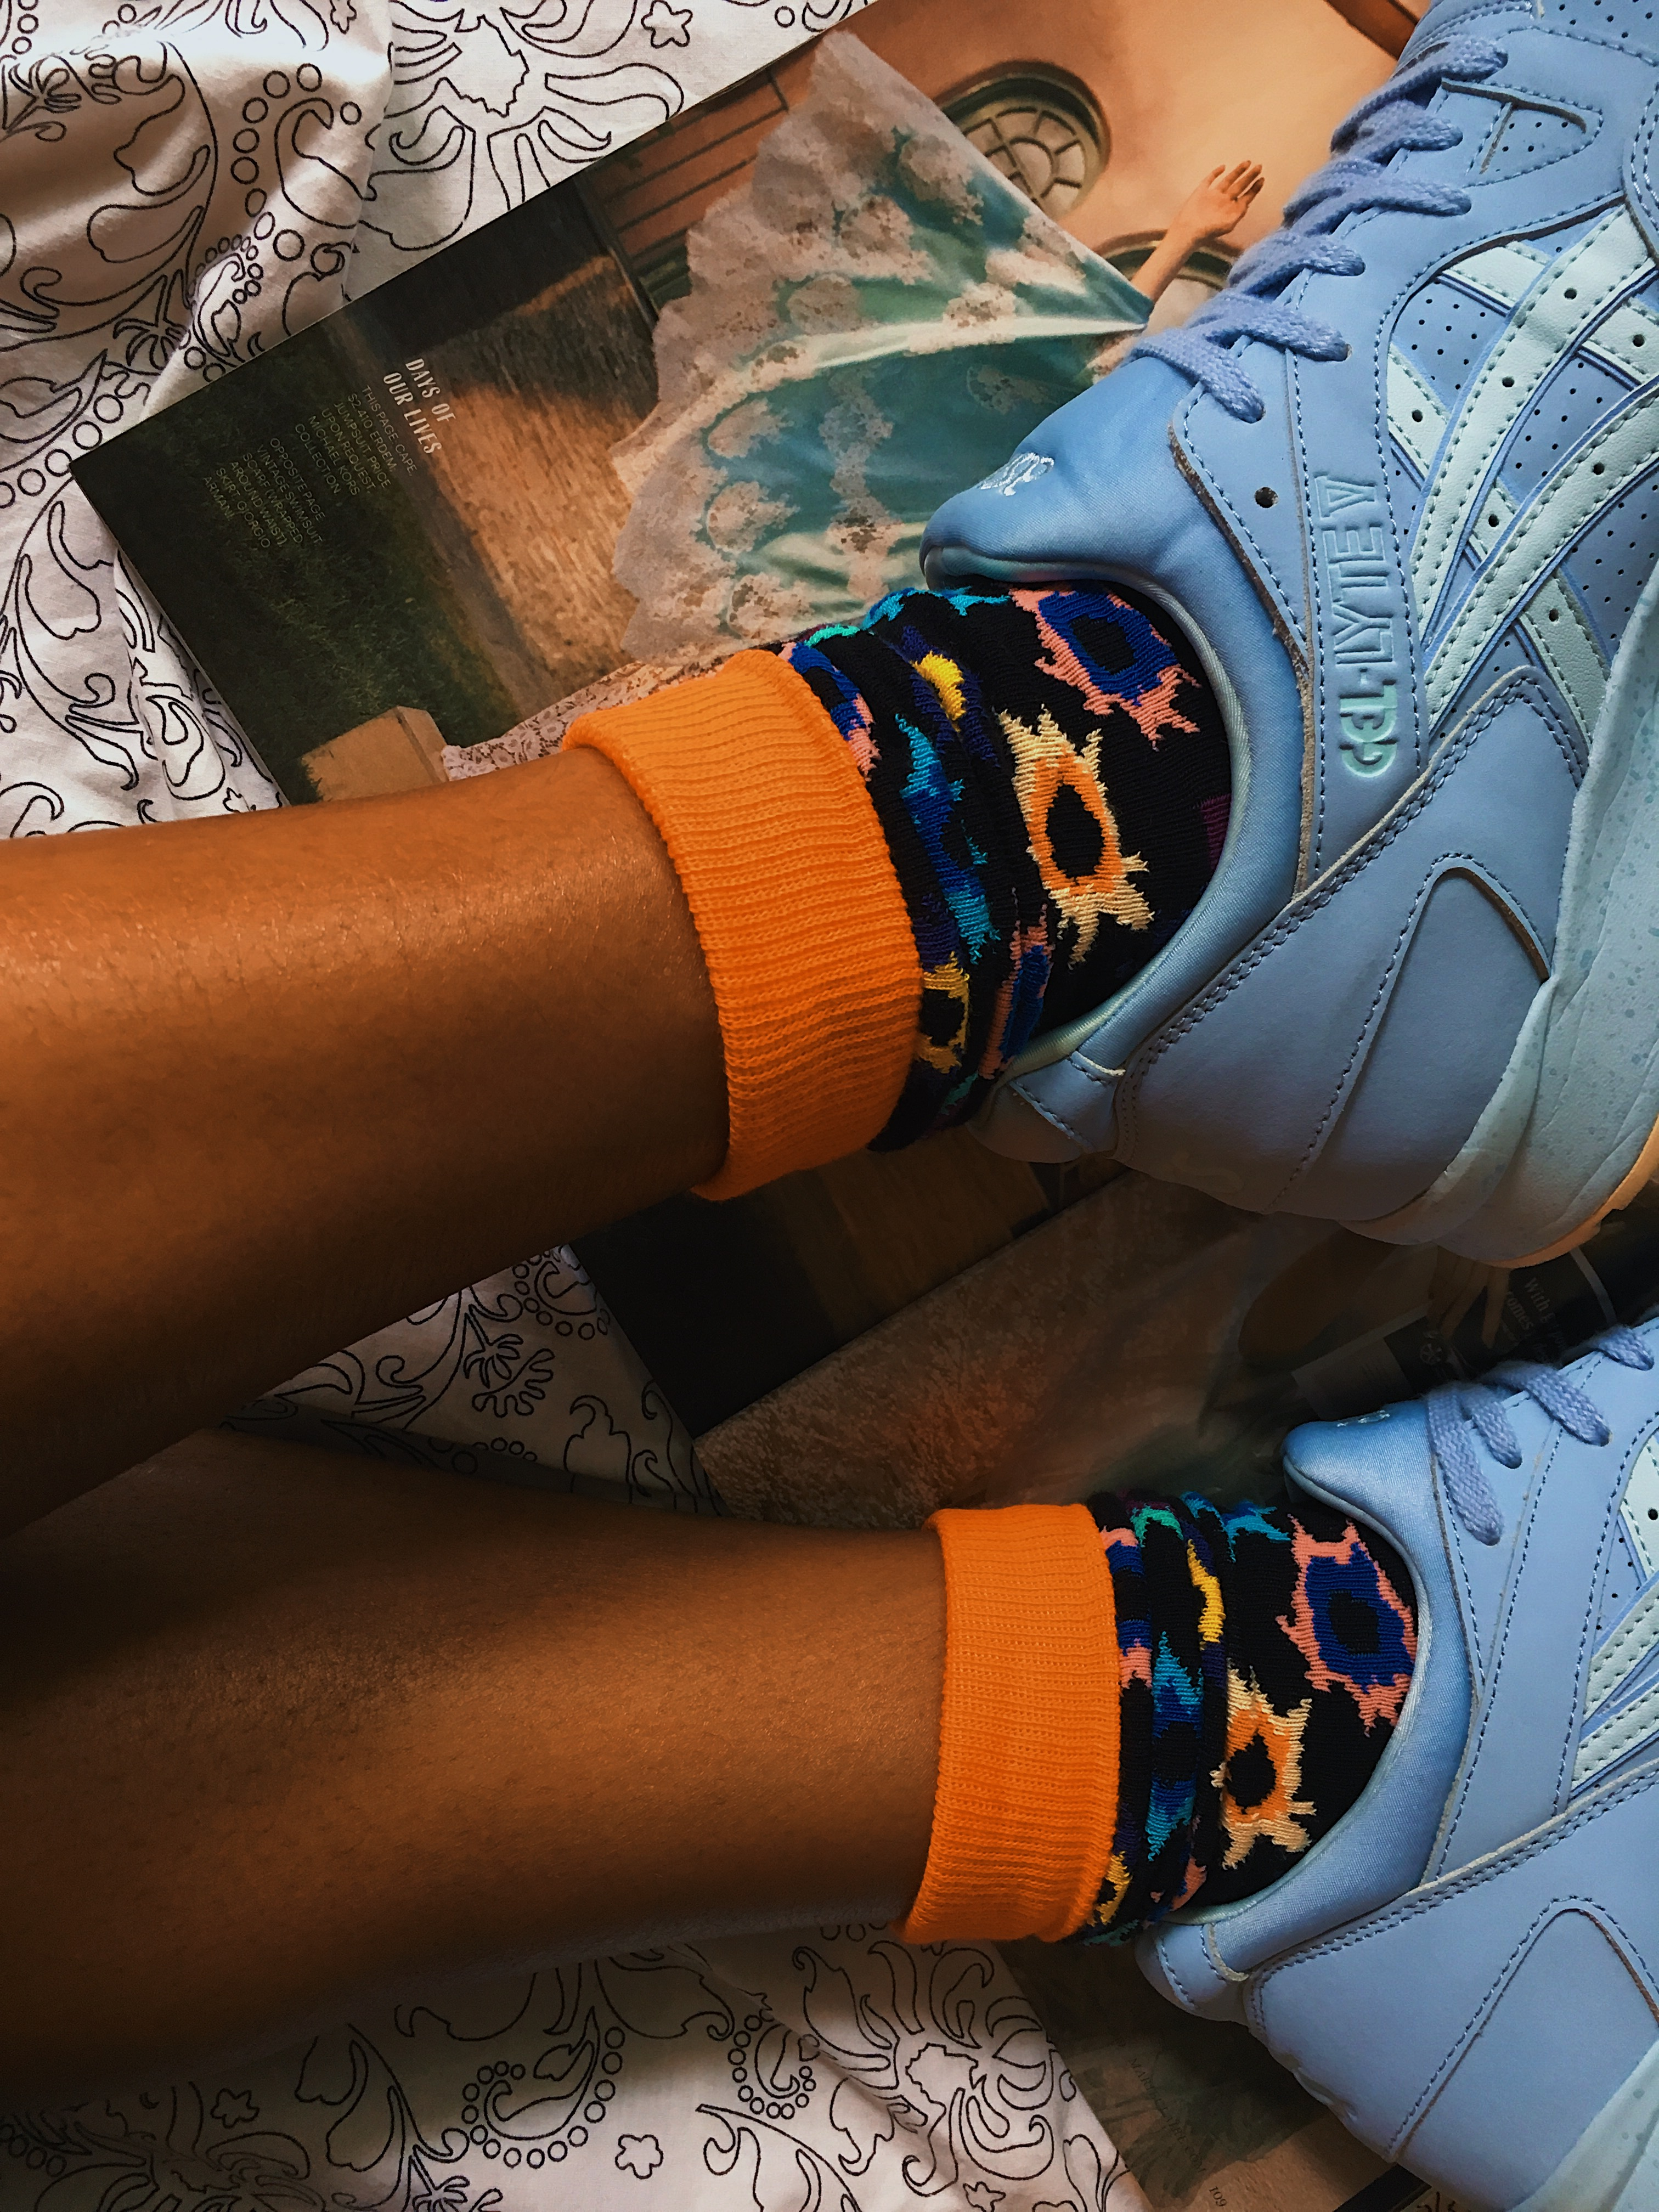 happy socks-colorful socks-asics tiger-gel lyte v-wear who you are-blue sneakers-lcm-printed socks